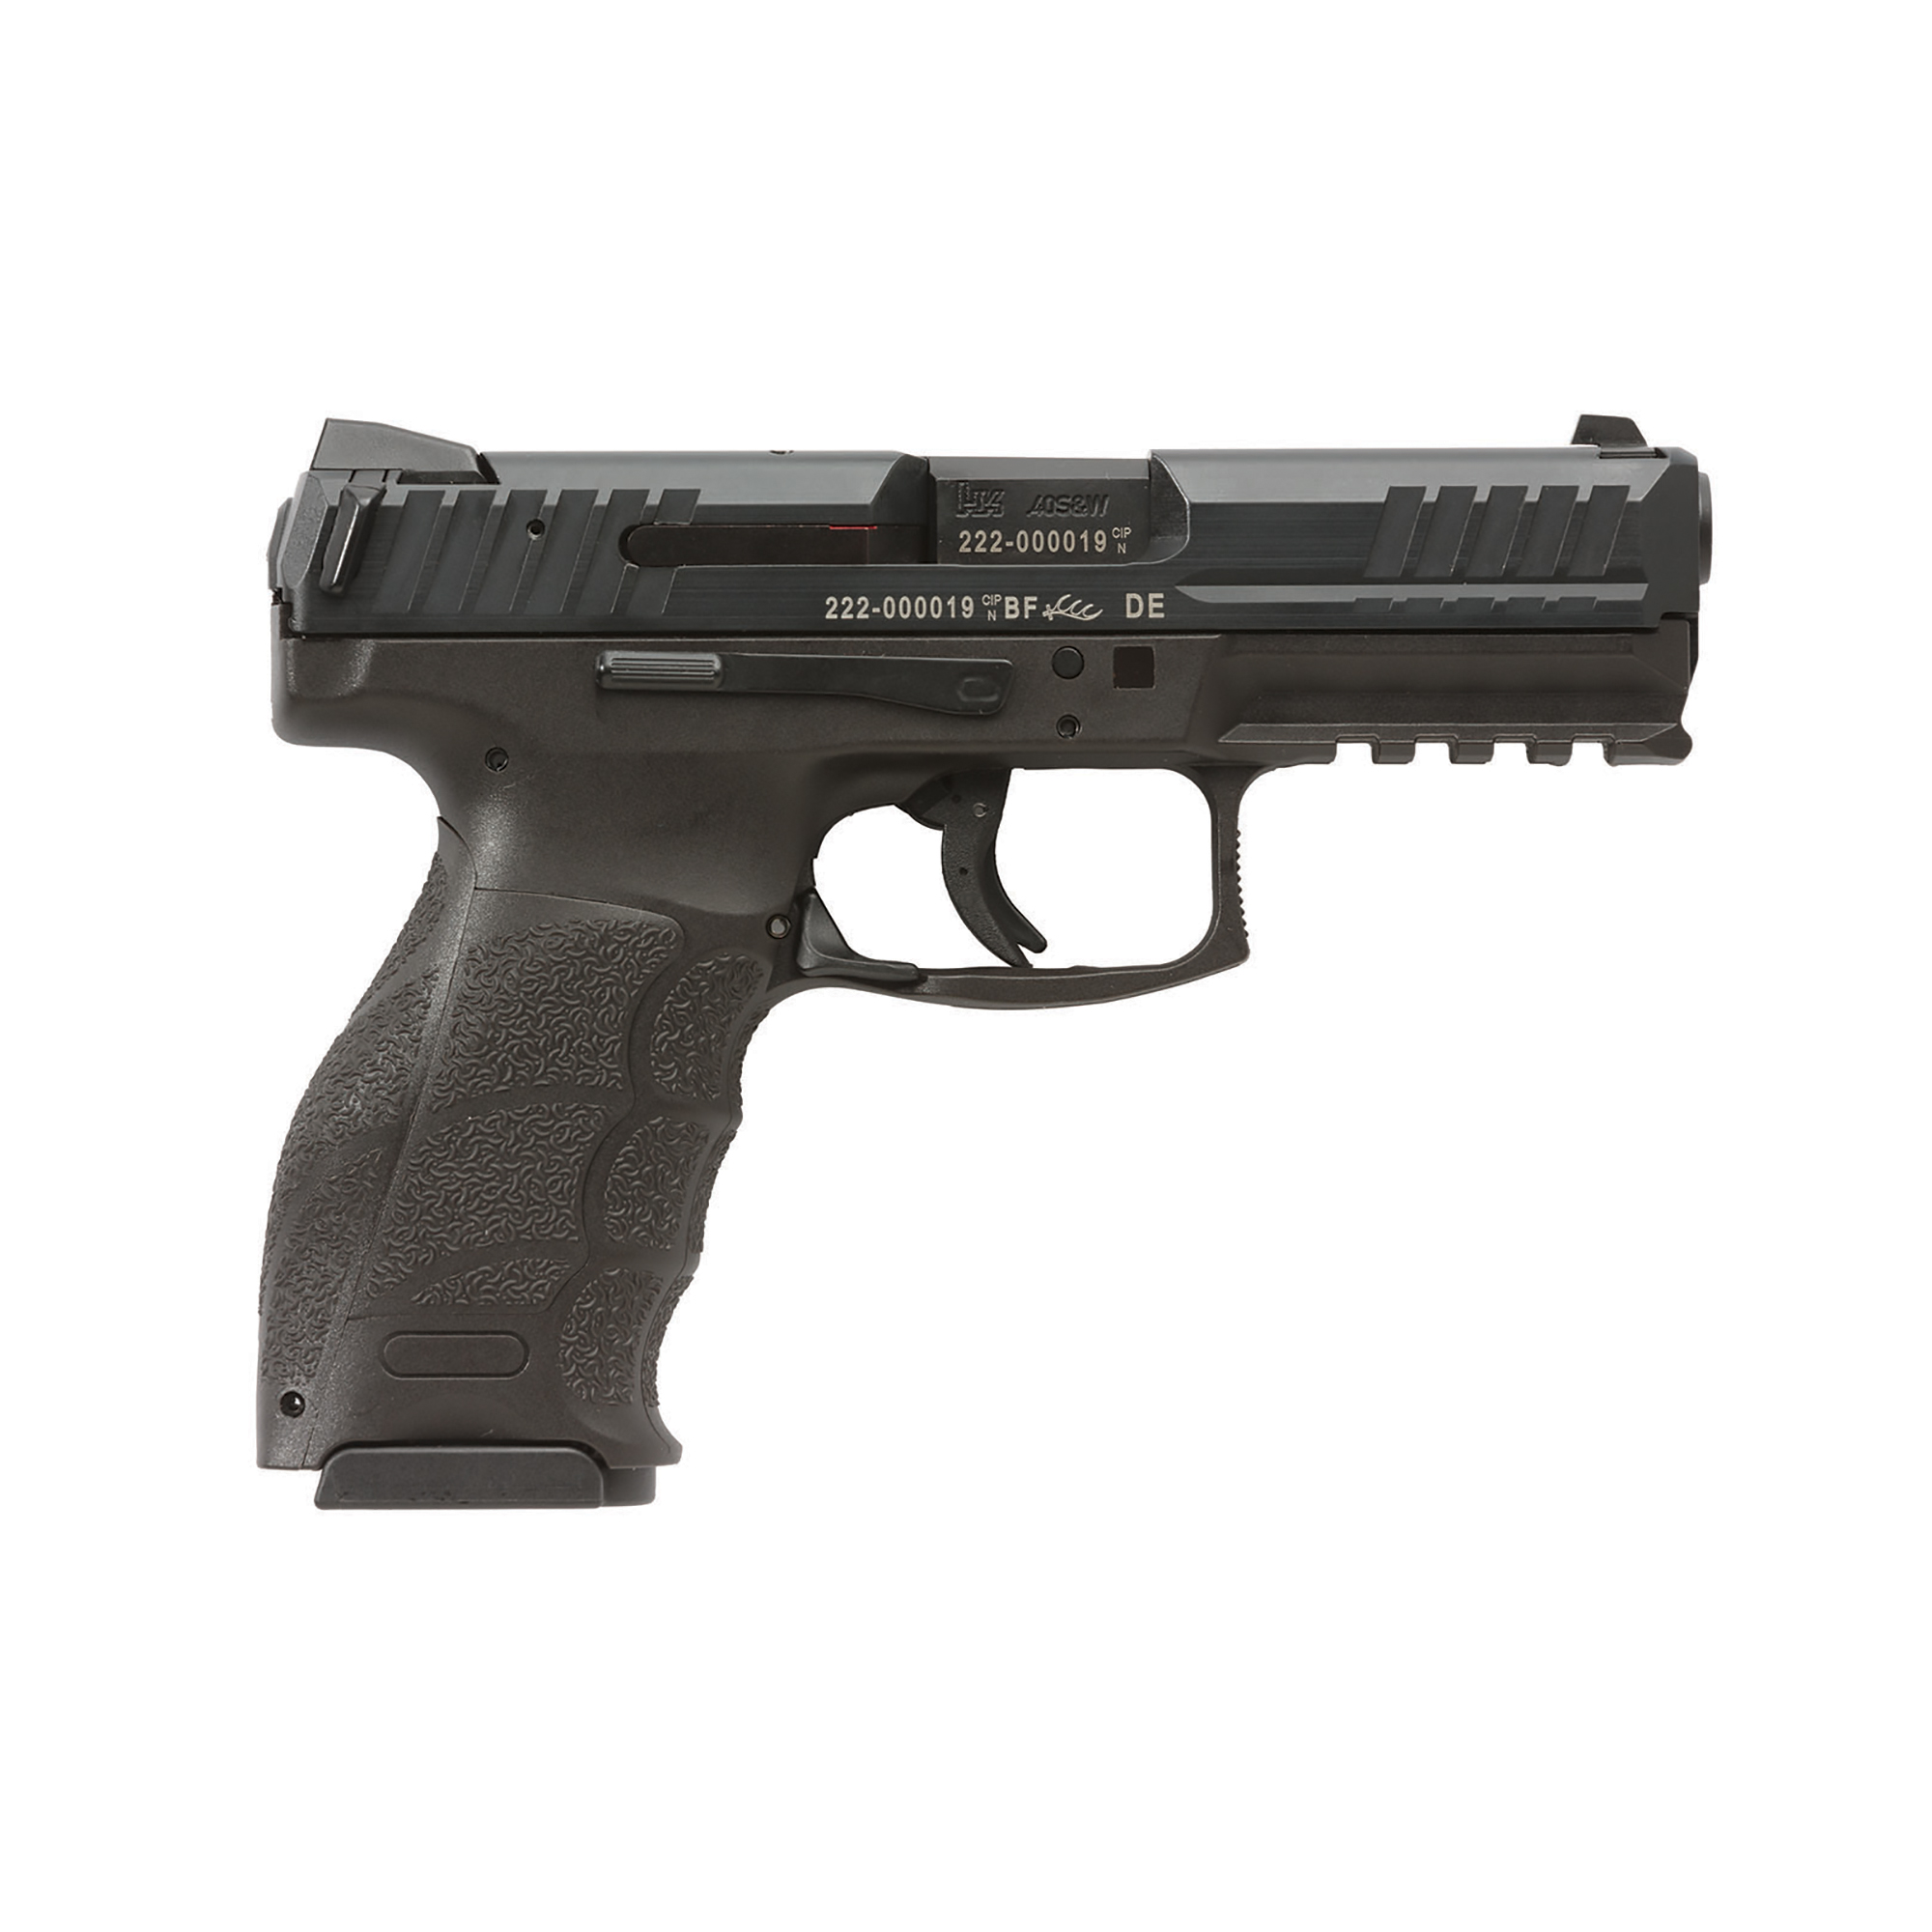 """In development for more than four years"""" the VP Series is Heckler & Koch's latest handgun and the first striker fired HK since the renowned P7 series pistols were introduced in the 1980s. The VP40 is well-suited for civilian sport shooting"""" security"""" military"""" and law enforcement use."""